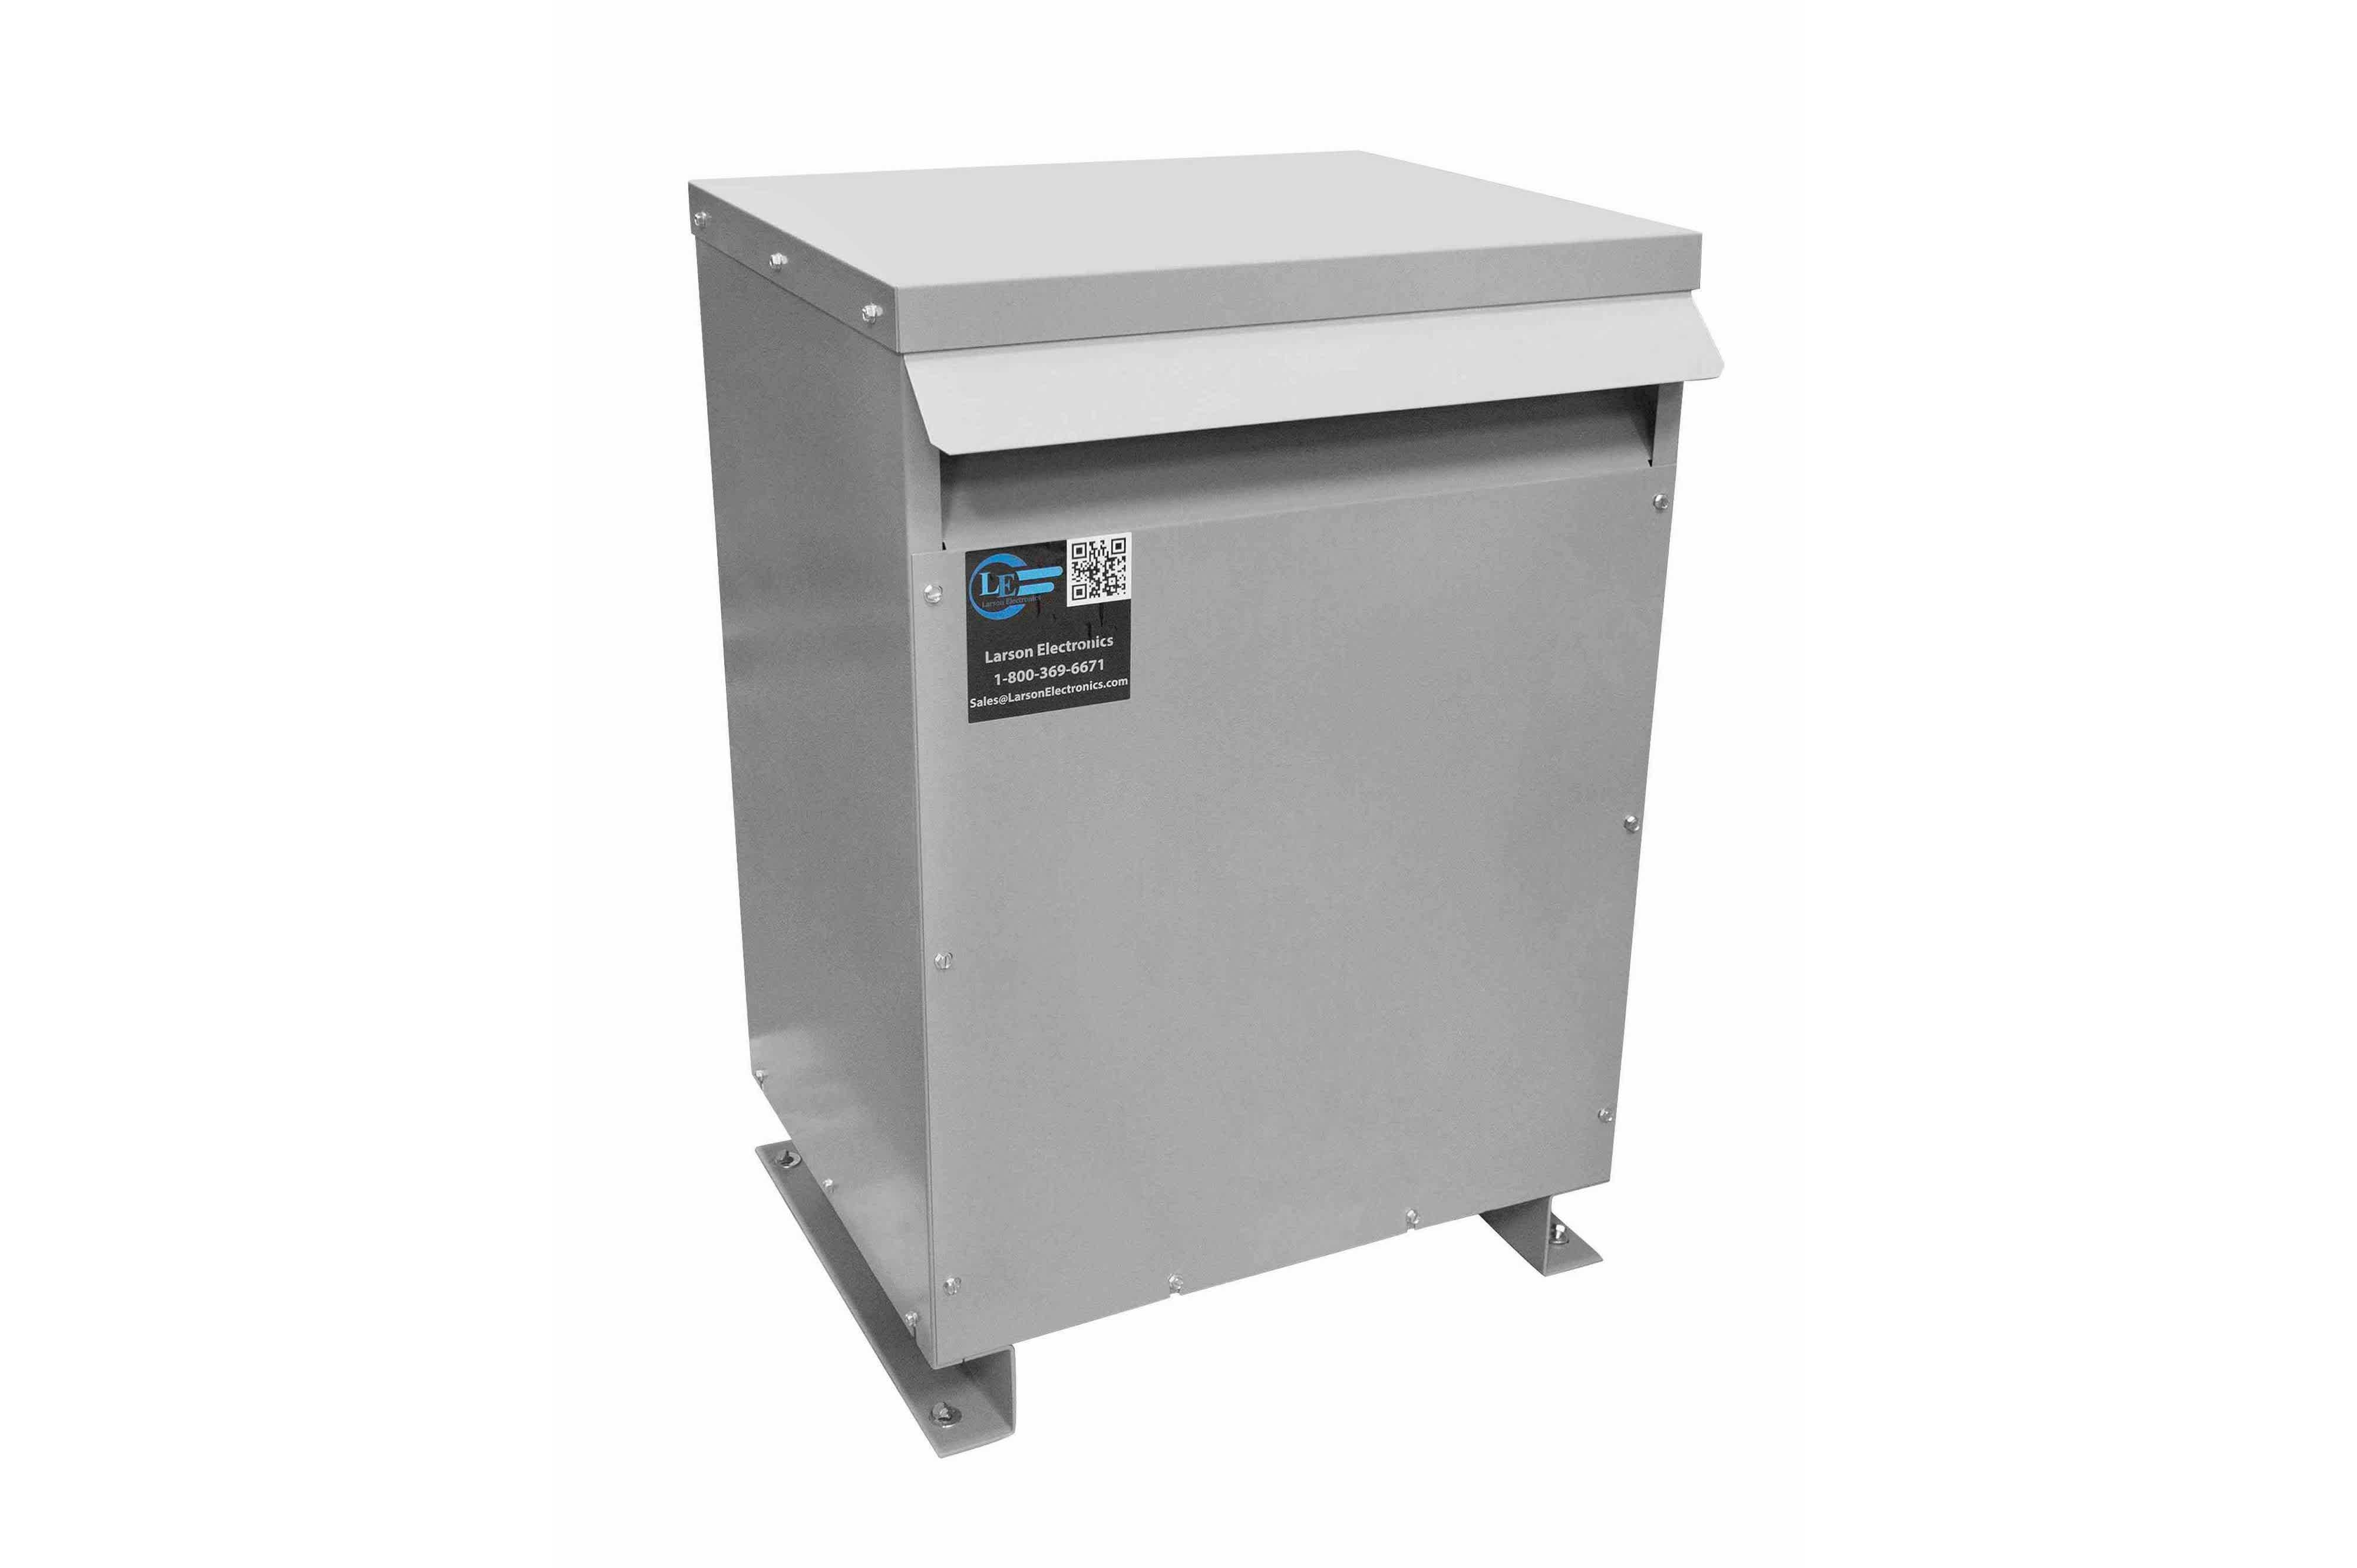 47.5 kVA 3PH Isolation Transformer, 480V Wye Primary, 415V Delta Secondary, N3R, Ventilated, 60 Hz